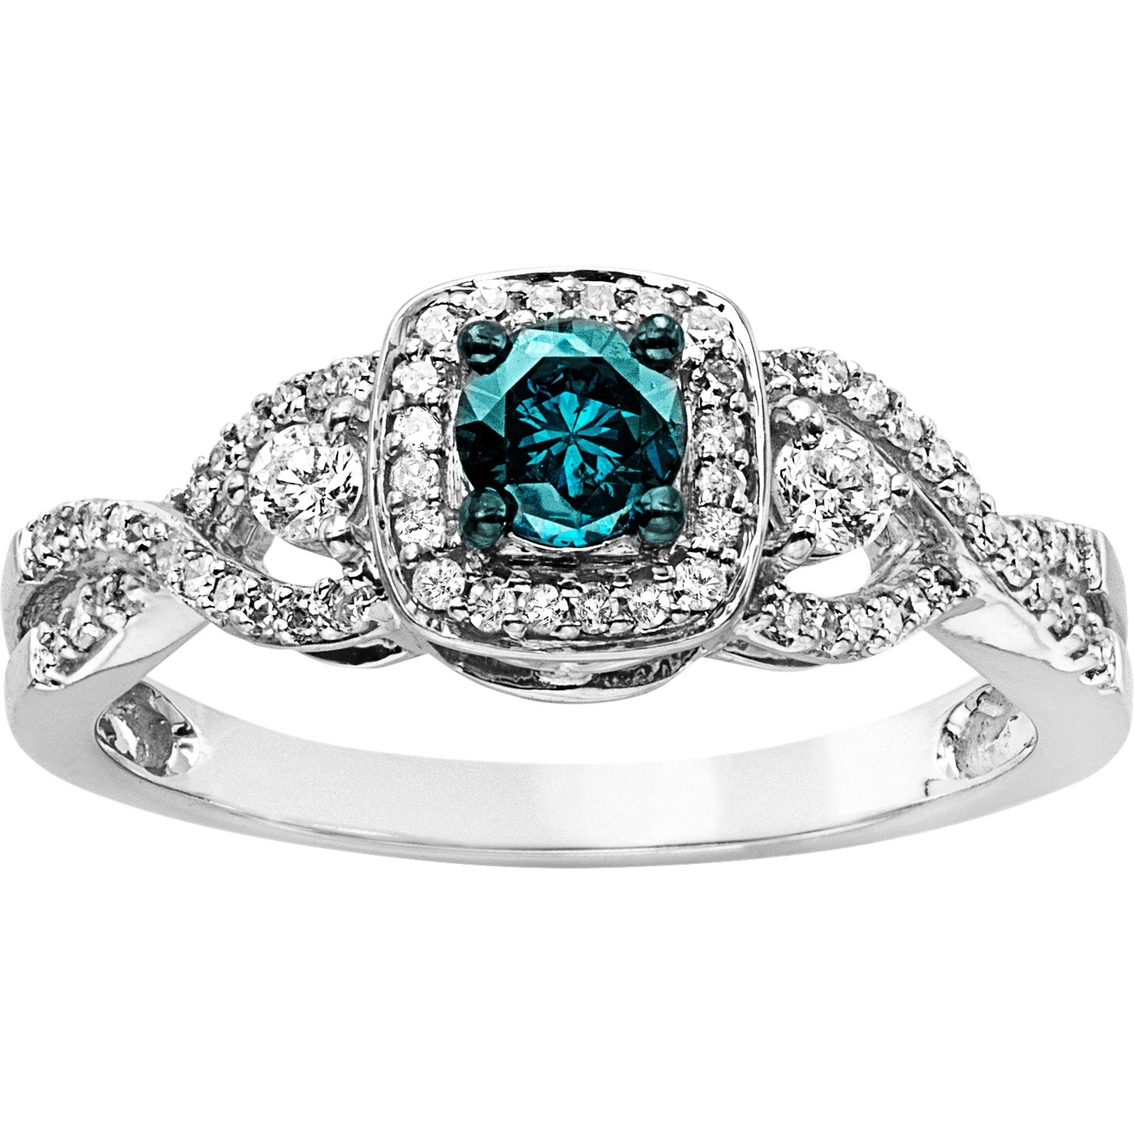 Military Exchange Engagement Rings